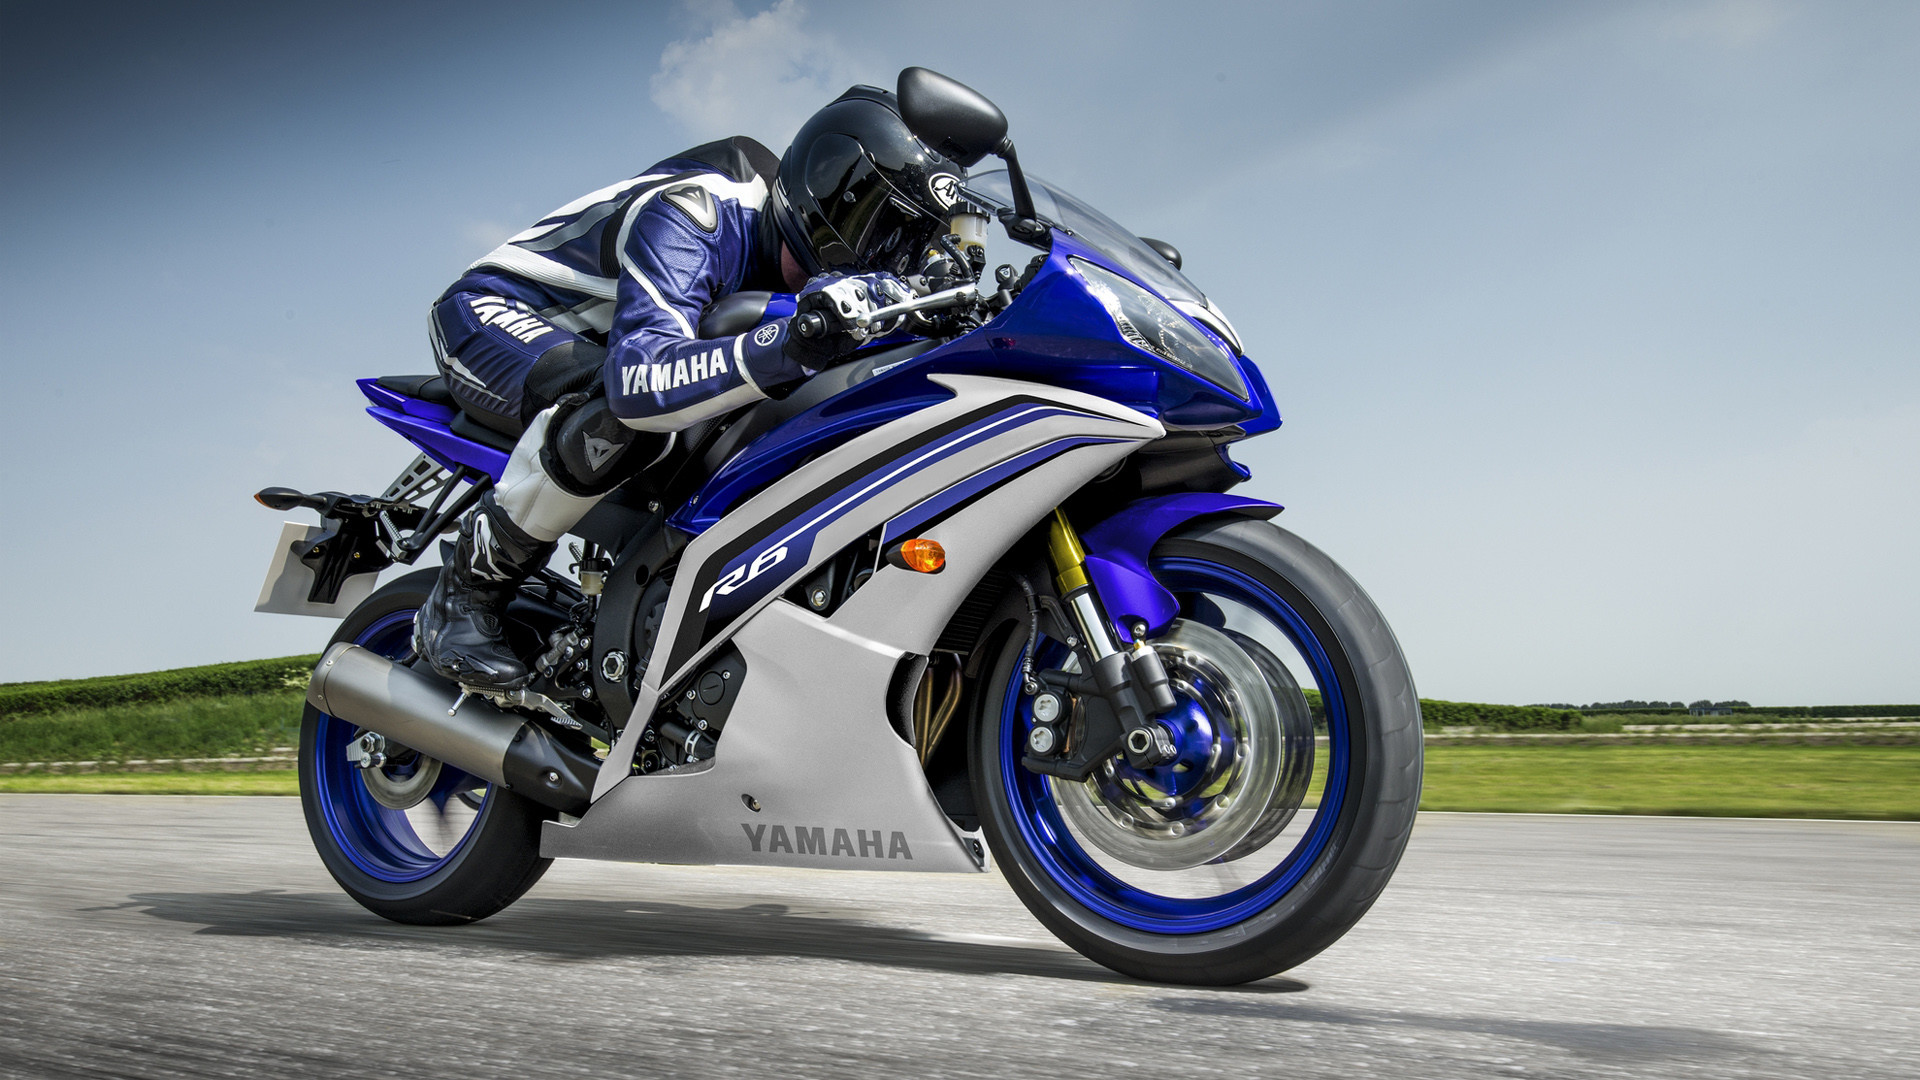 1920x1080 Download Yamaha R wallpapers to your cell phone awesome bike